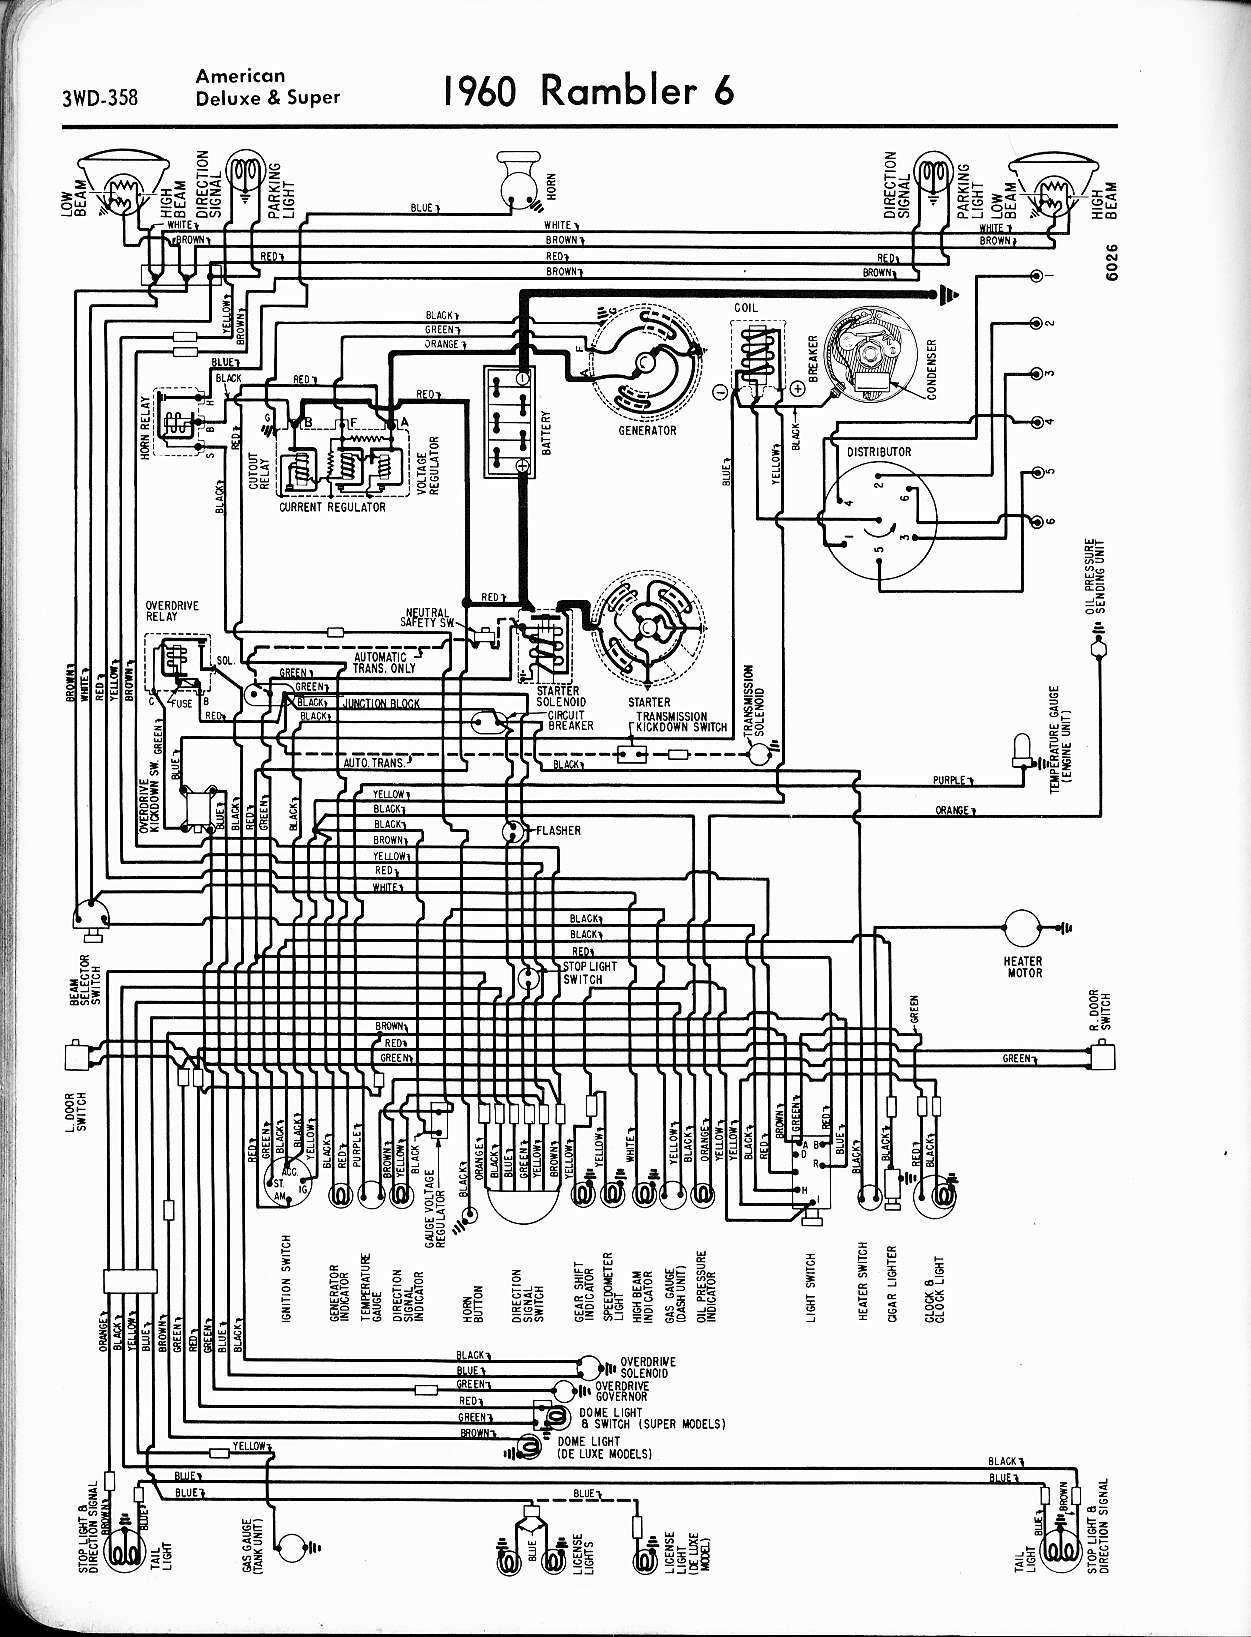 1995 Eagle Talon 2 0 Wiring Diagrams furthermore 1984 F250 Duraspark Ii Wiring Diagram likewise 91 Ford Tempo Wiring Diagram in addition Alternator And Regulator Id And Connectors topic13346 together with 1968 Evinrude Wiring Diagram. on amc amx wiring diagram